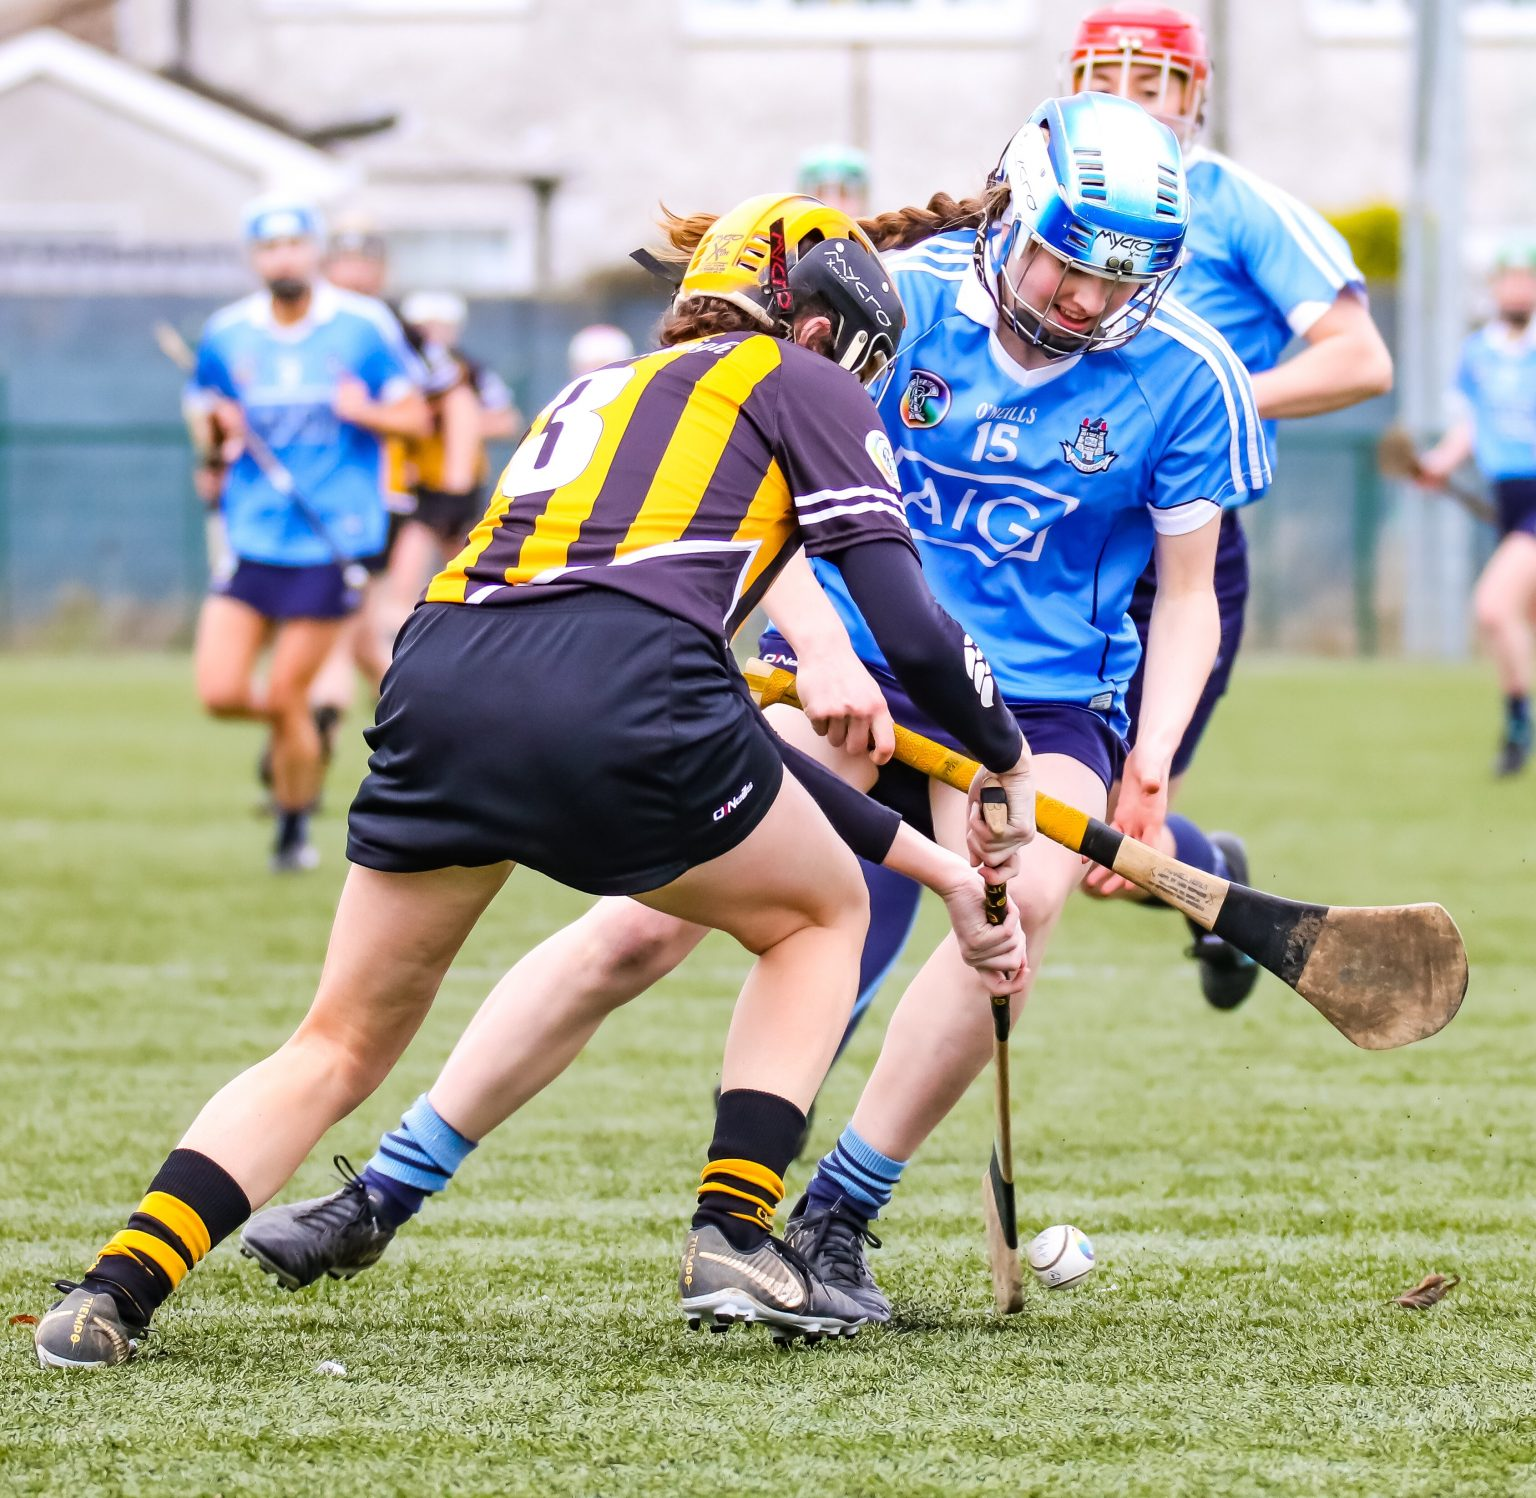 Dublin's Premier Juniors Kept Their Unbeaten League Record Intact With Draw Against Kilkenny